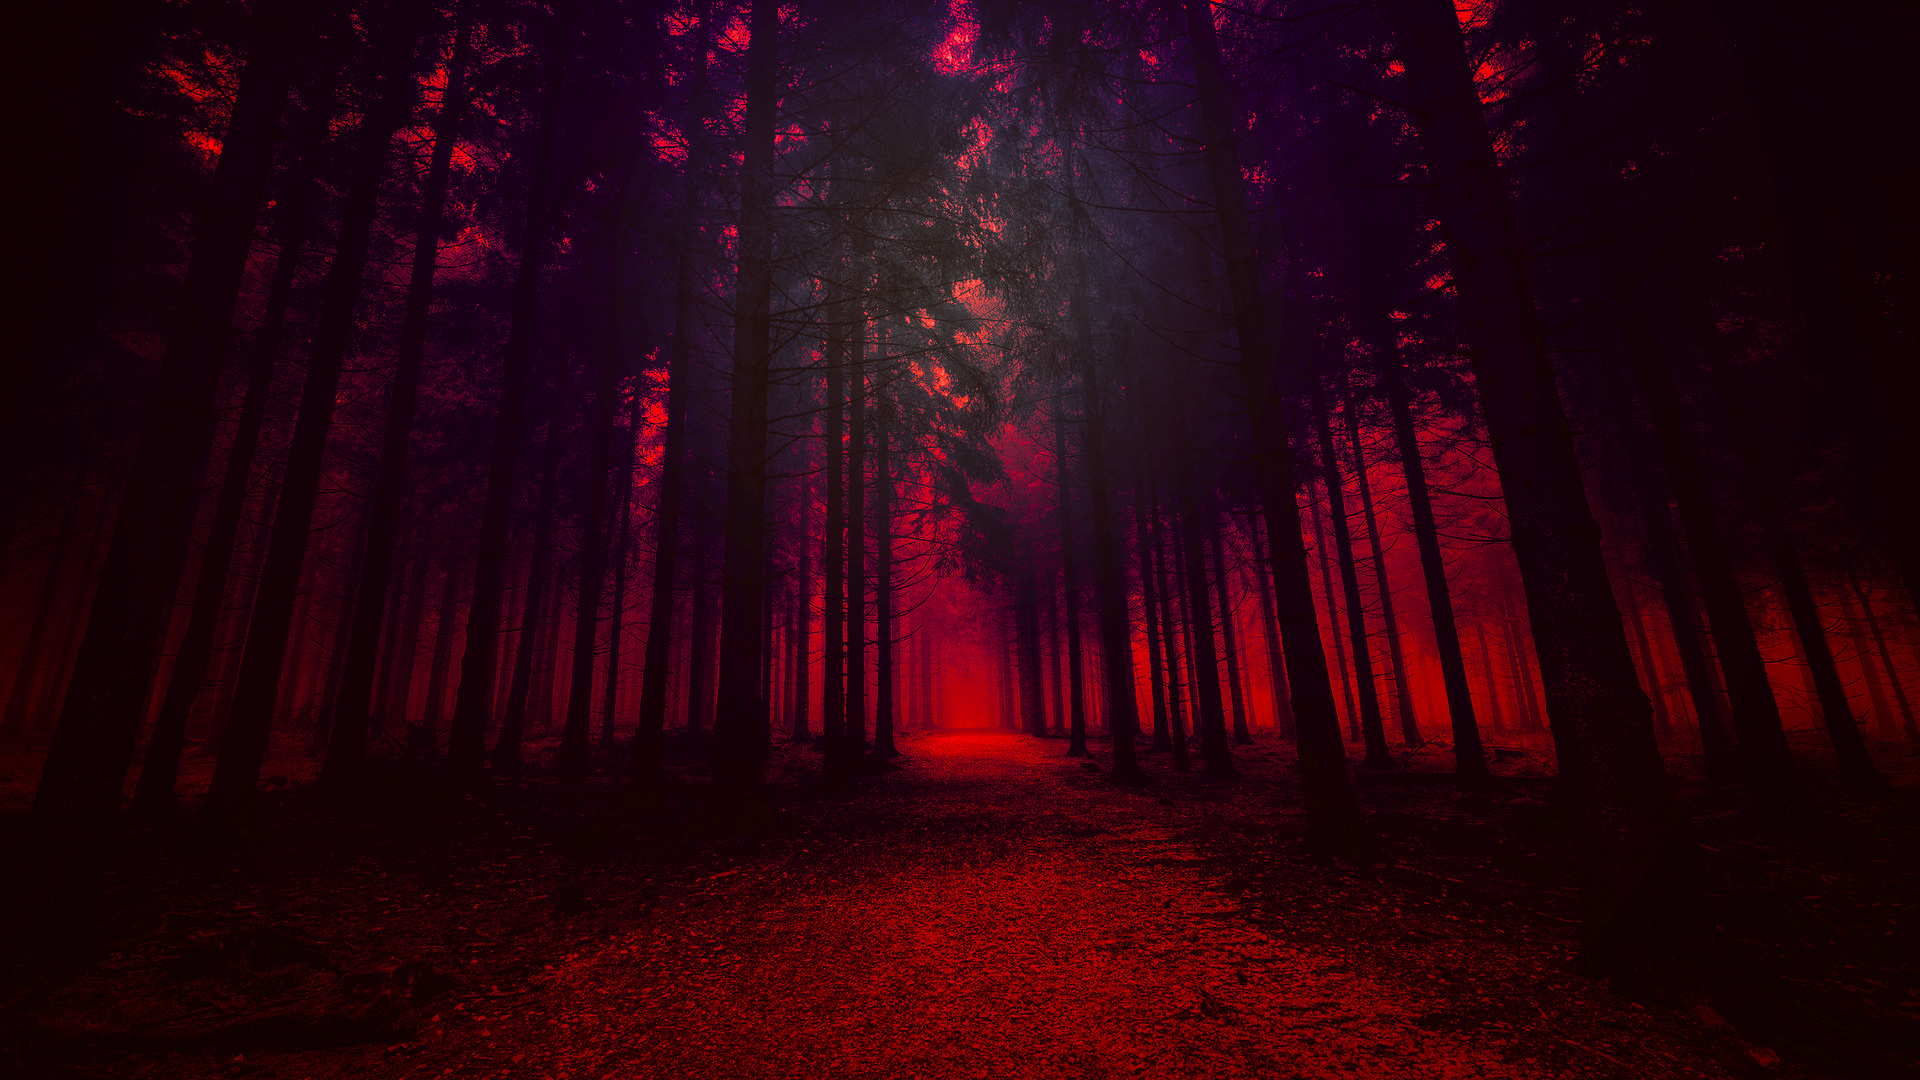 Artistic Red Forest, HD Nature, 4k Wallpapers, Images